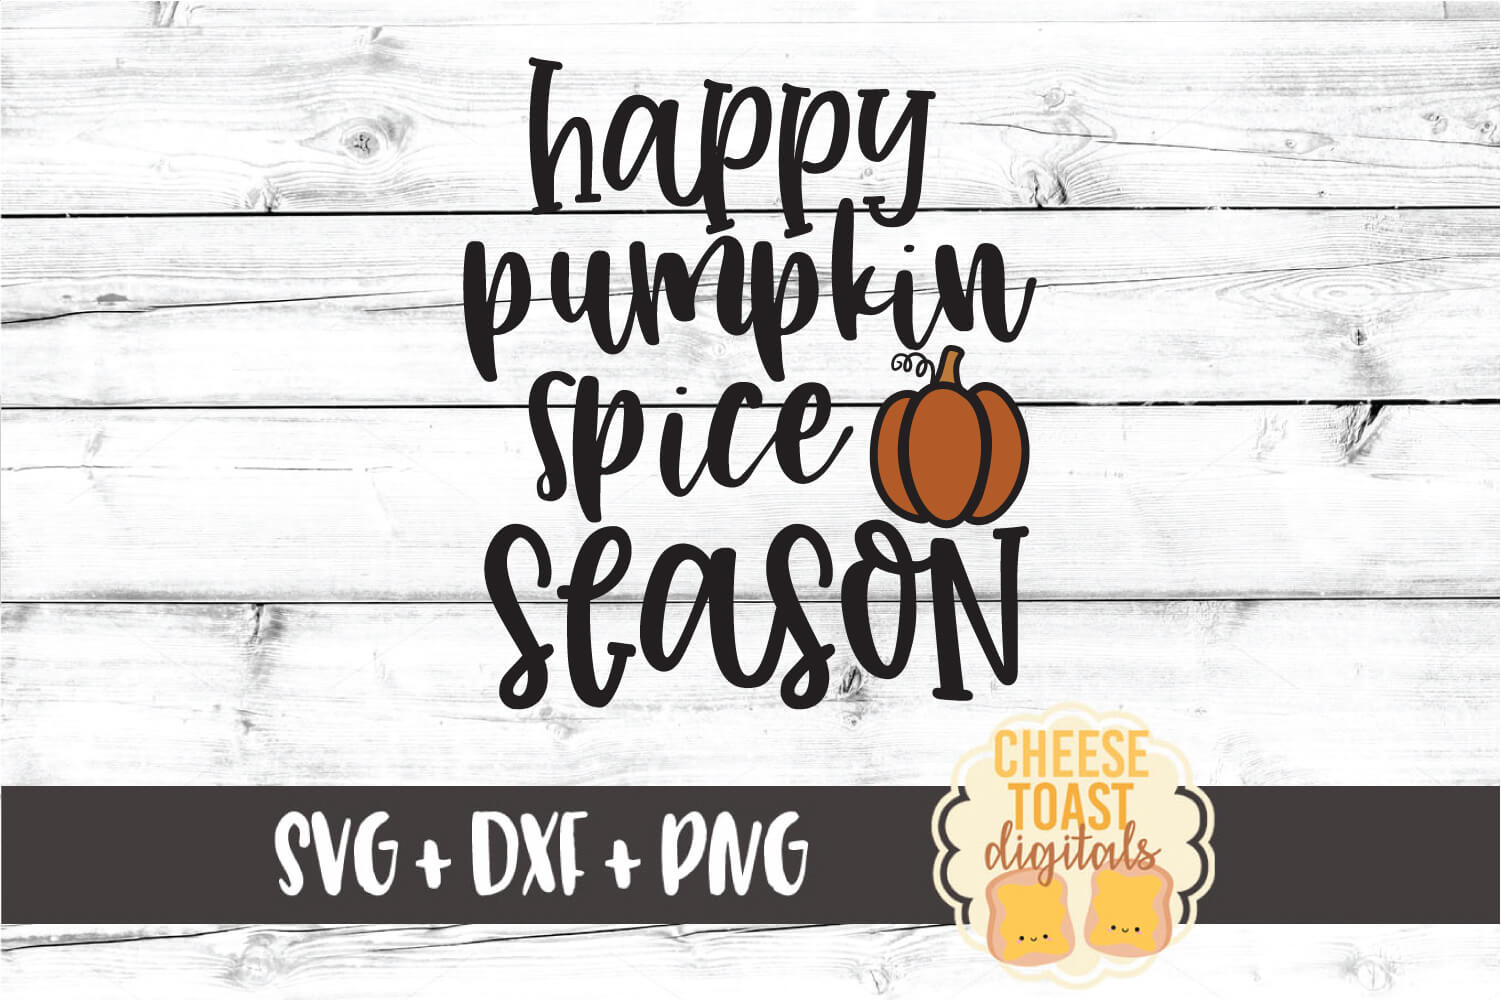 Happy Pumpkin Spice Season - Fall Sign SVG PNG DXF Cut Files example image 2